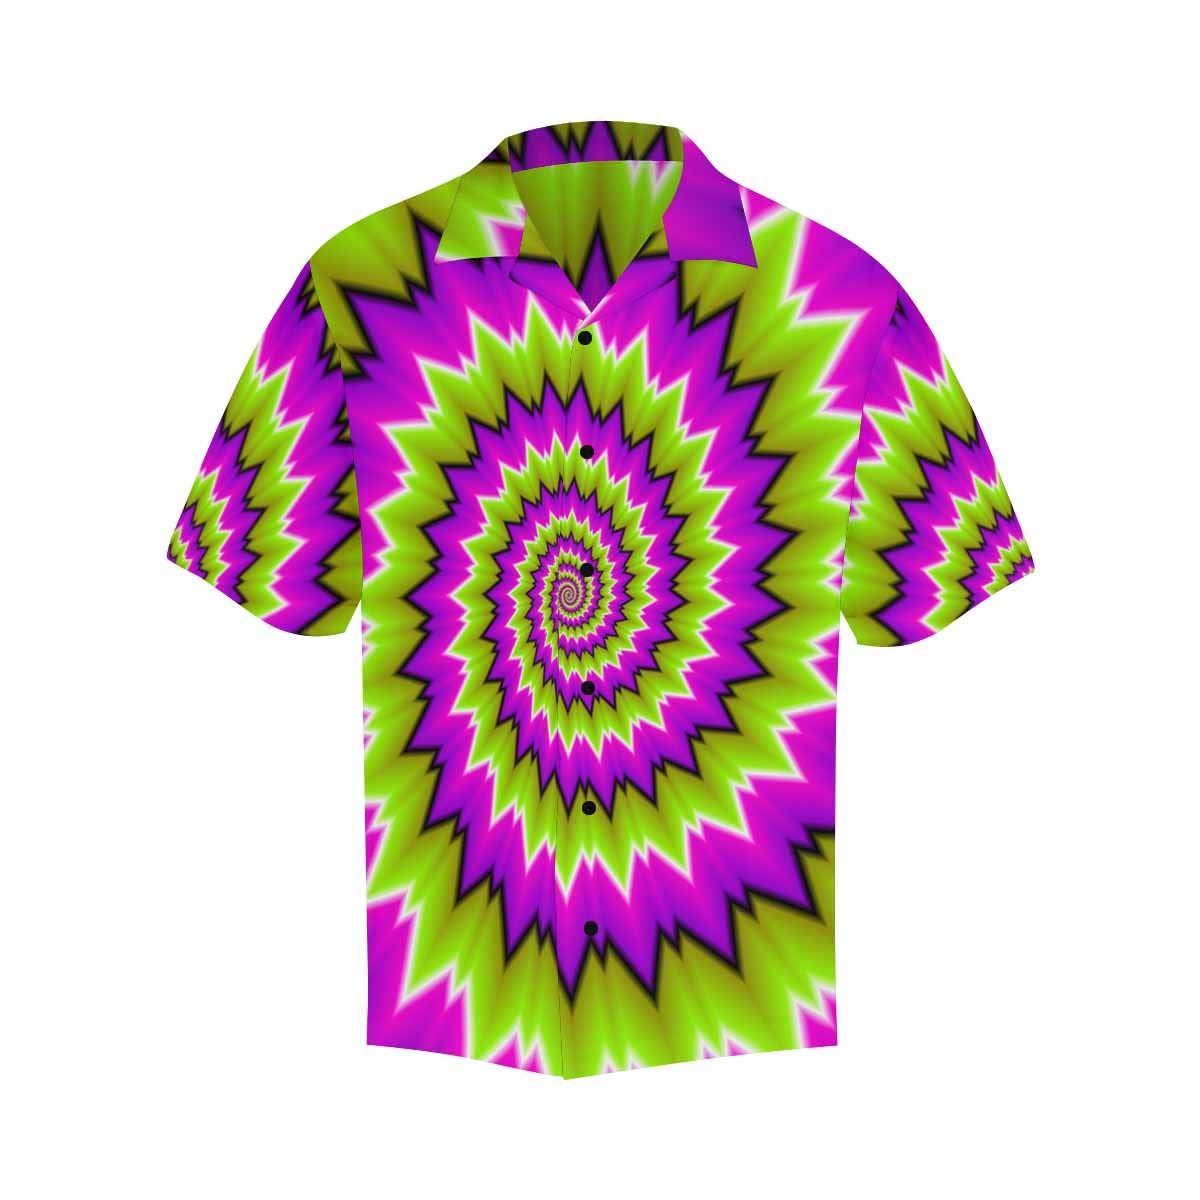 InterestPrint Shirt Short Sleeve Button Up Green Pink Spirals Shirt V-Neck Beach Top for Men